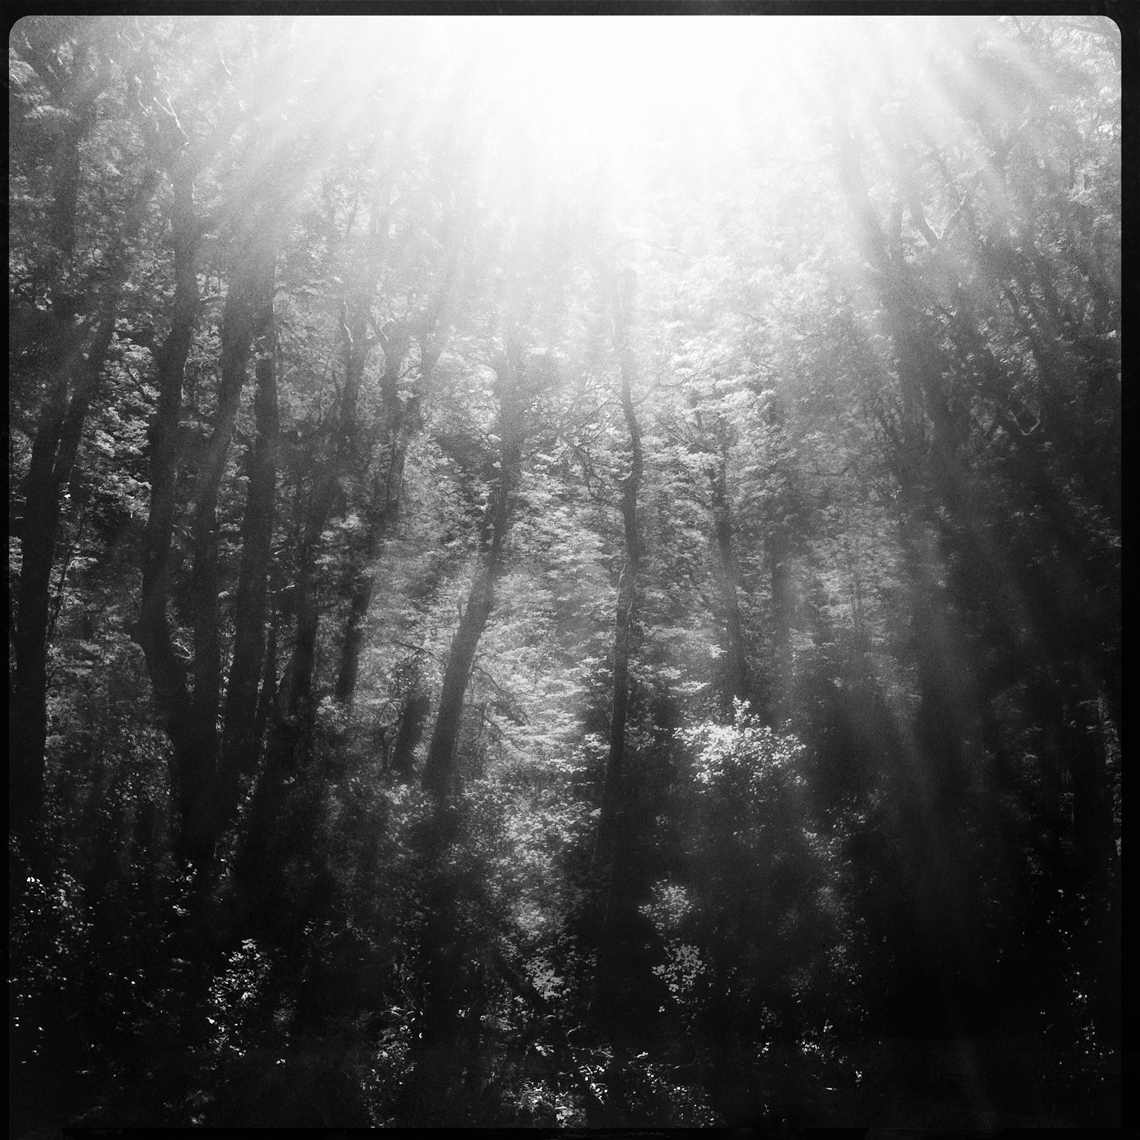 Jon Wyatt Photography - sunlight through trees. Hipstamatic